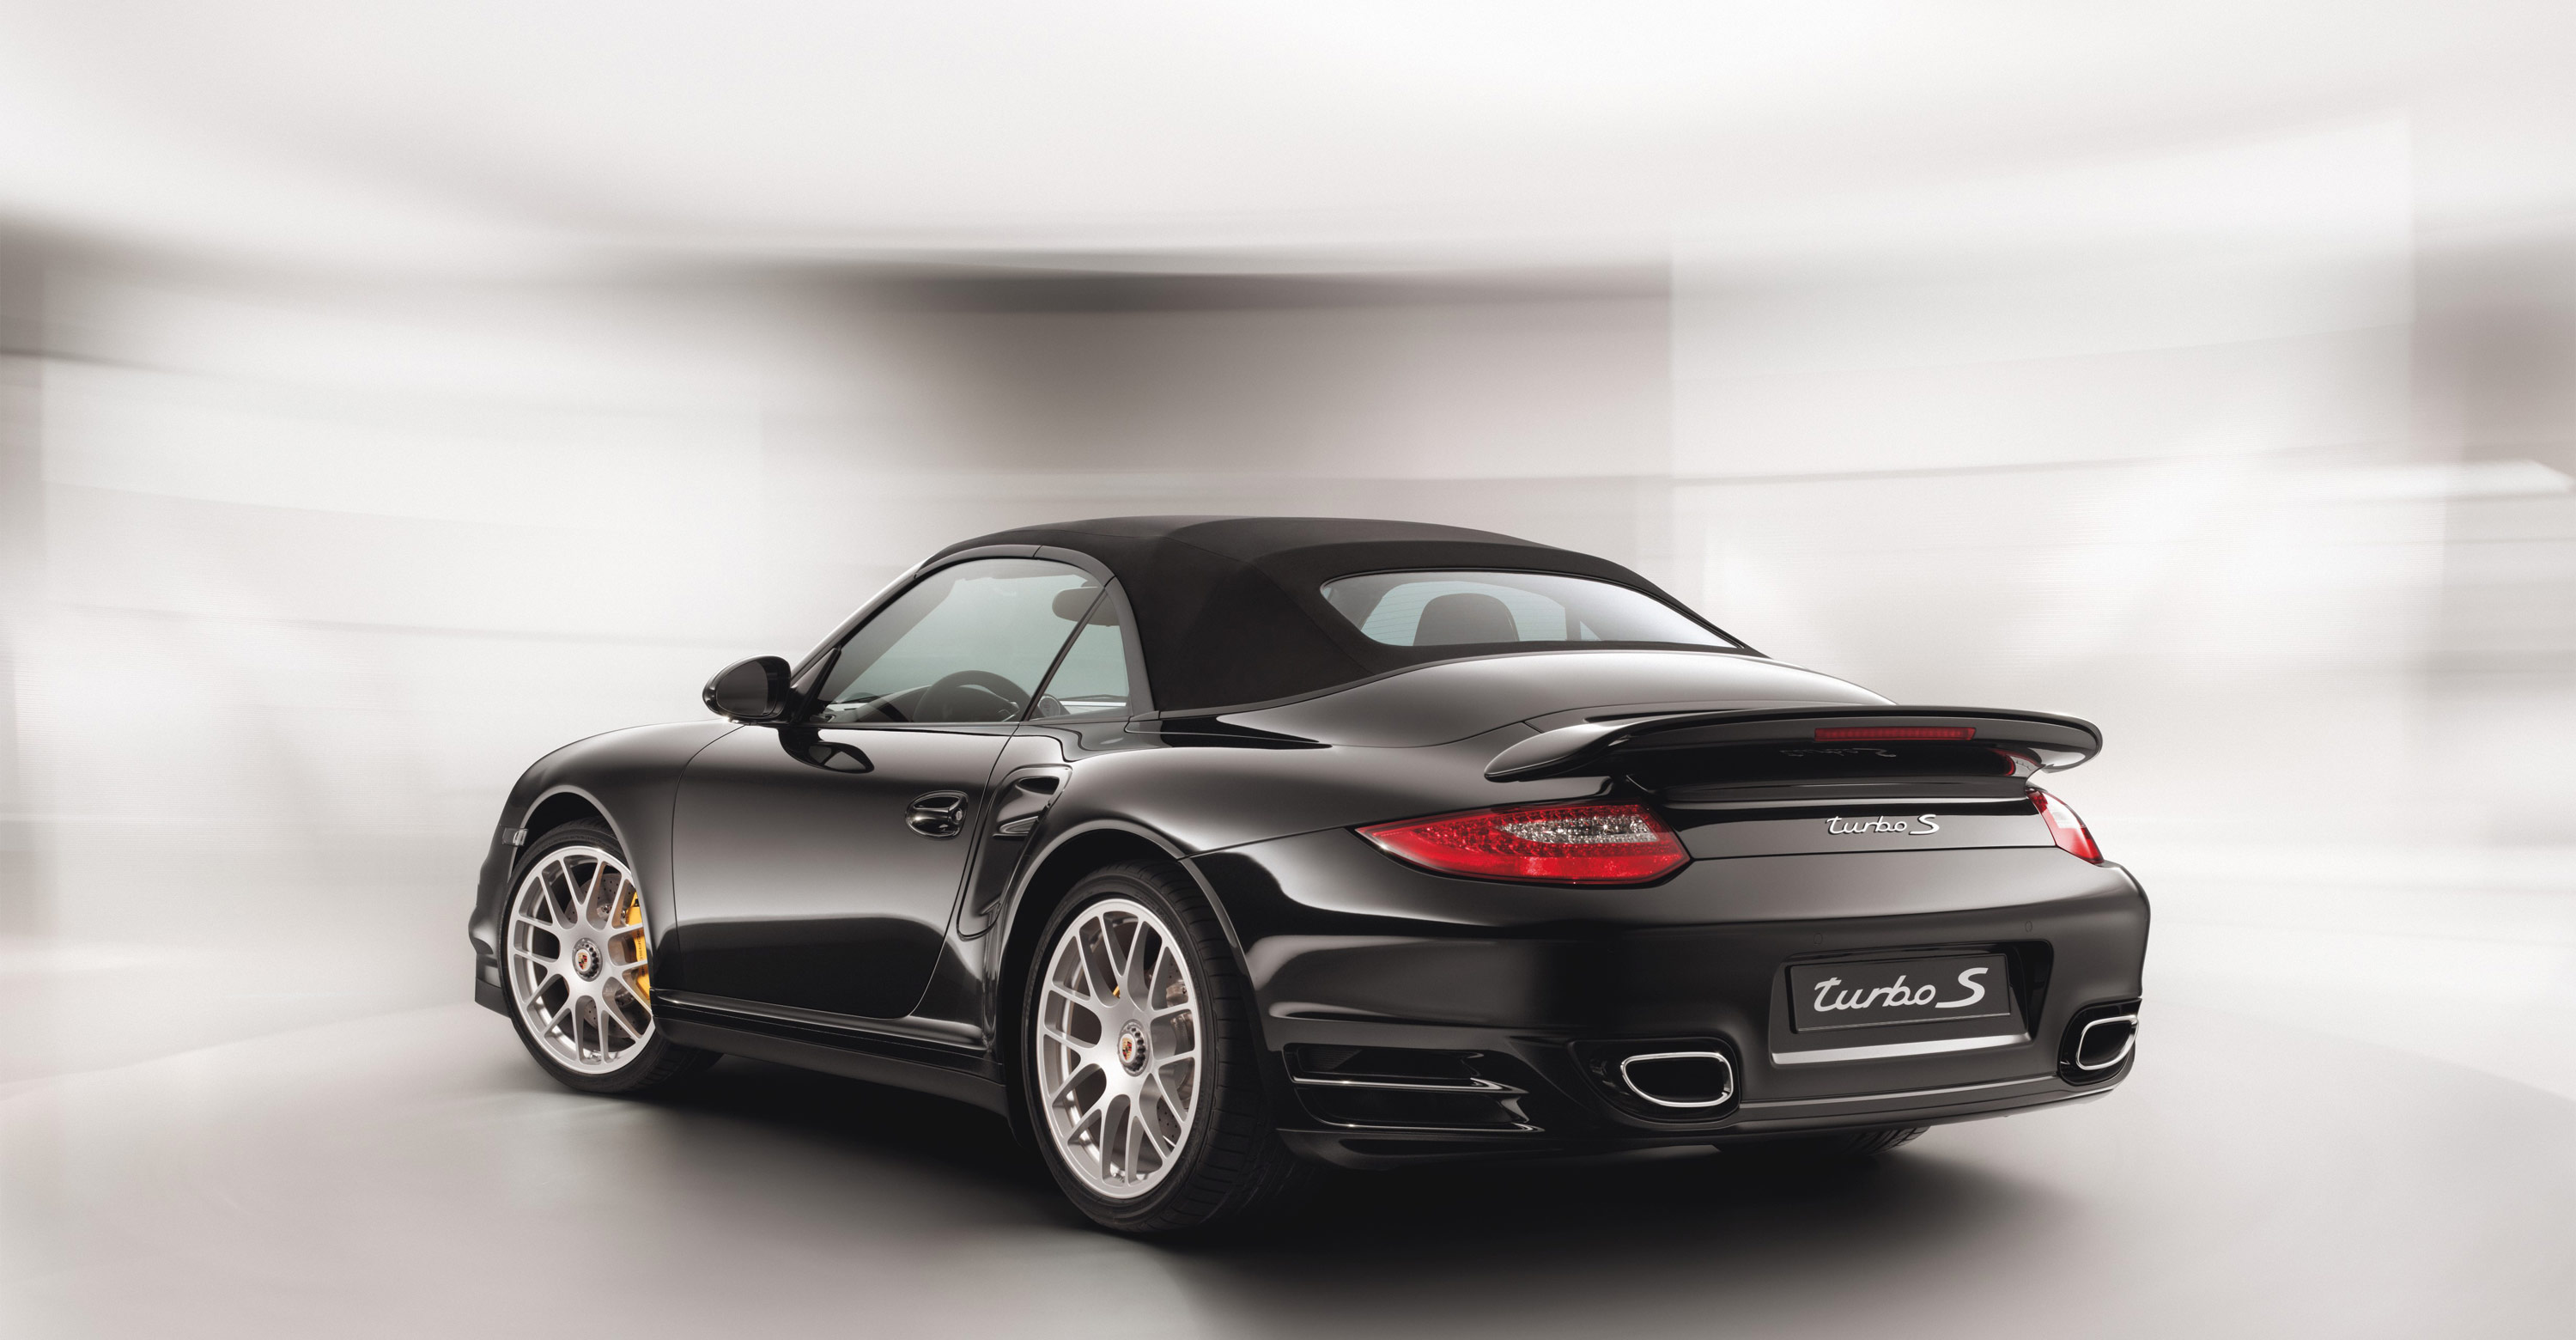 2011 black porsche 911 turbo s cabriolet wallpapers